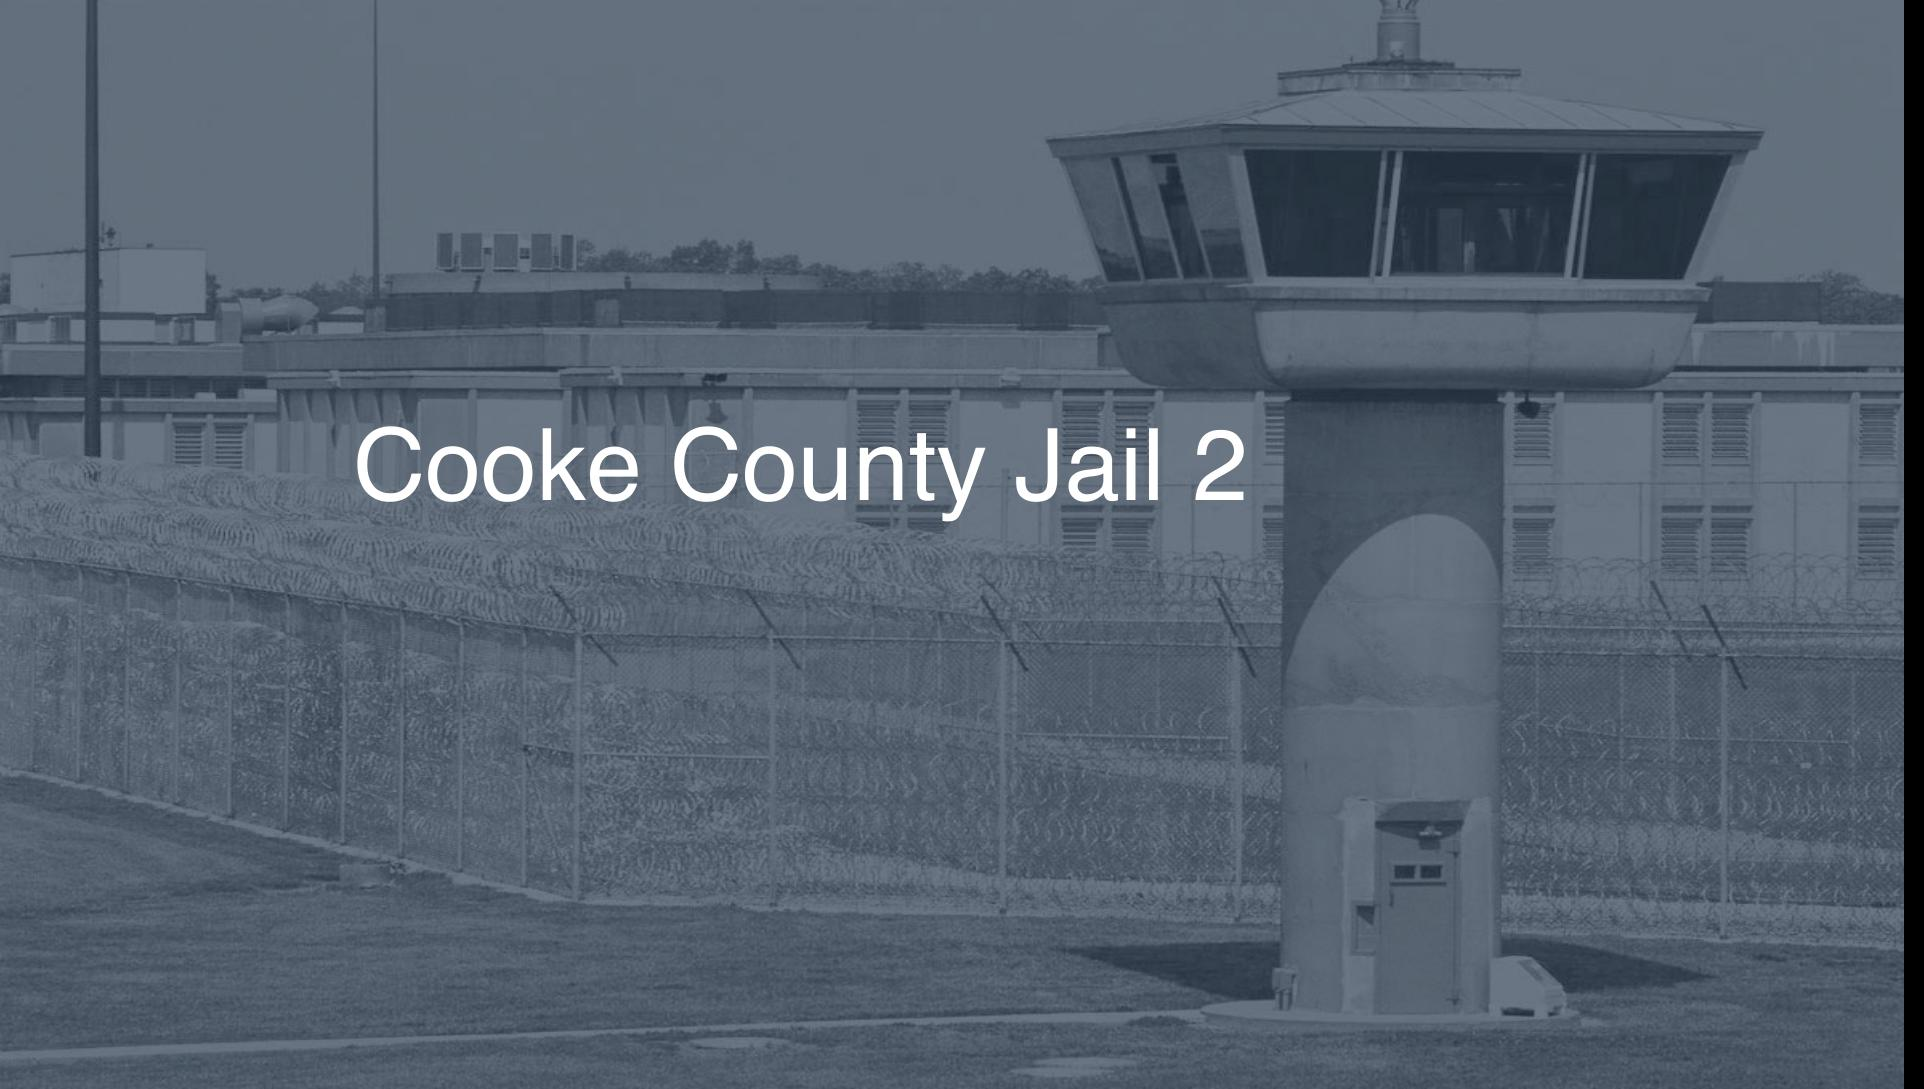 Cooke County Jail | Pigeonly - Inmate Search, Locate